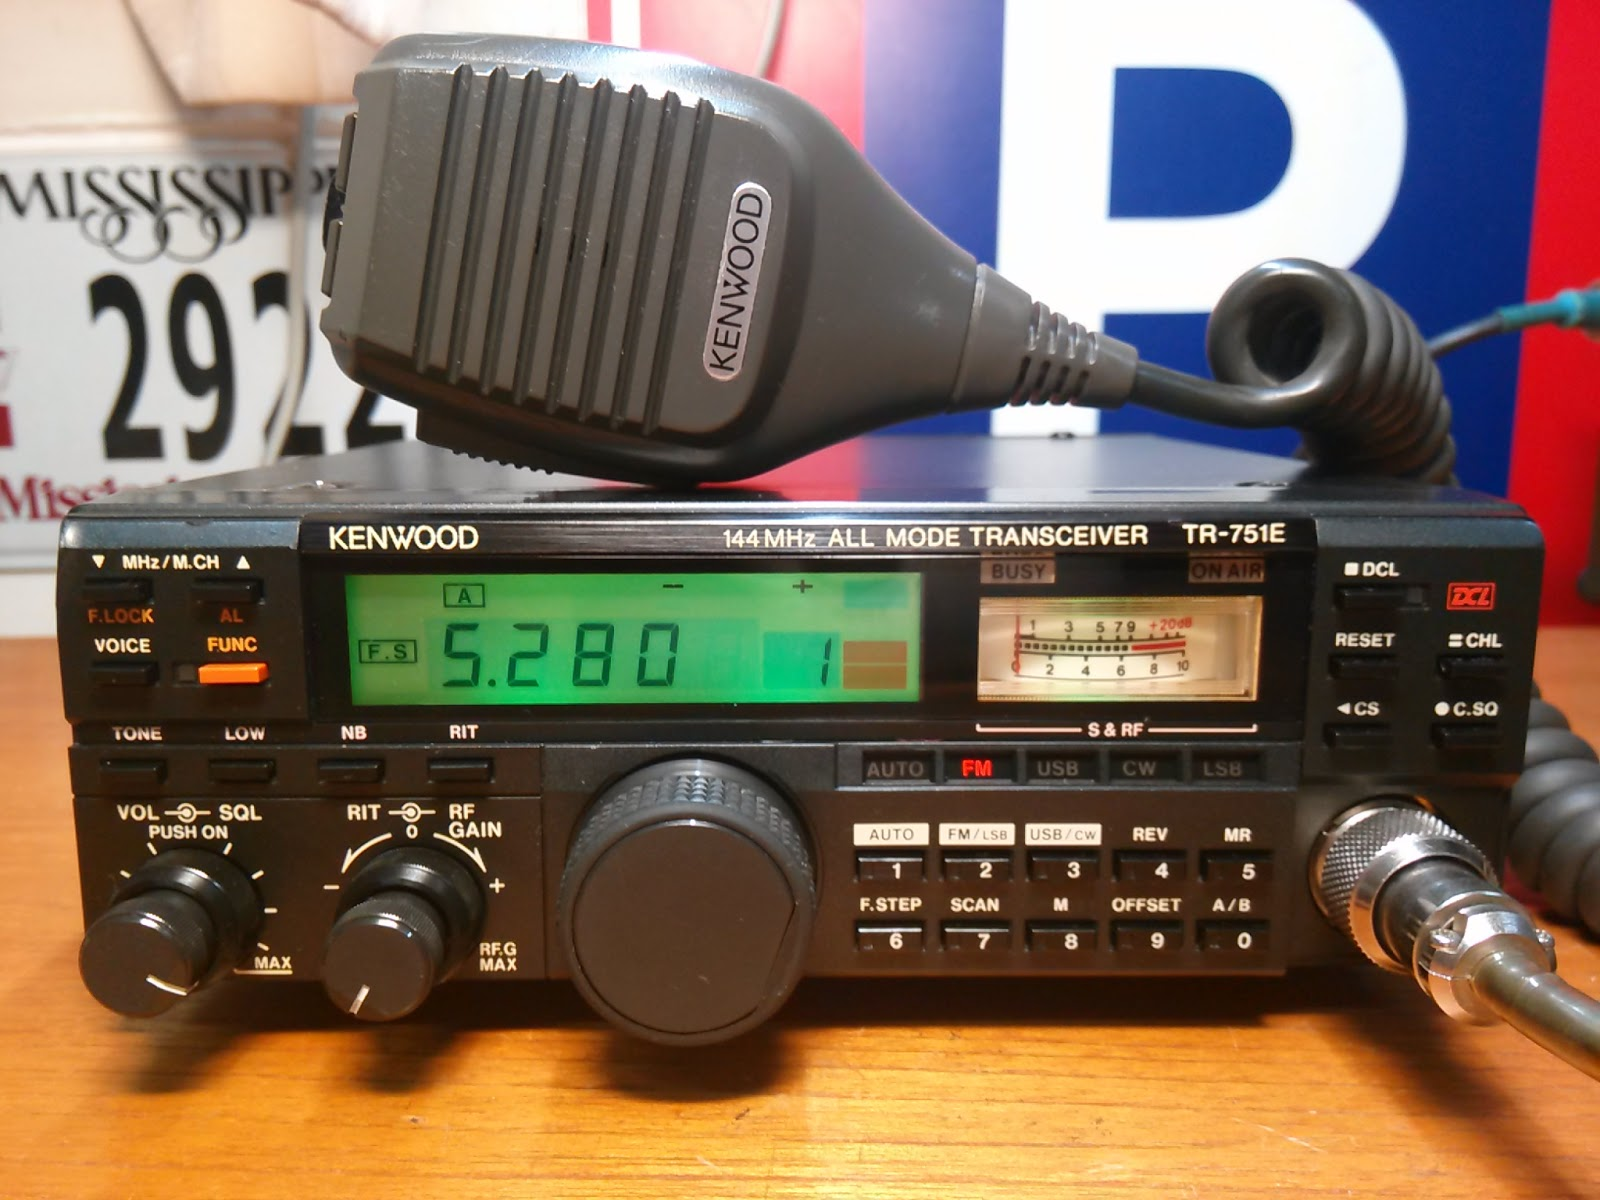 Heru-RadioMart: KENWOOD TR-751E VHF All Mode Transceiver